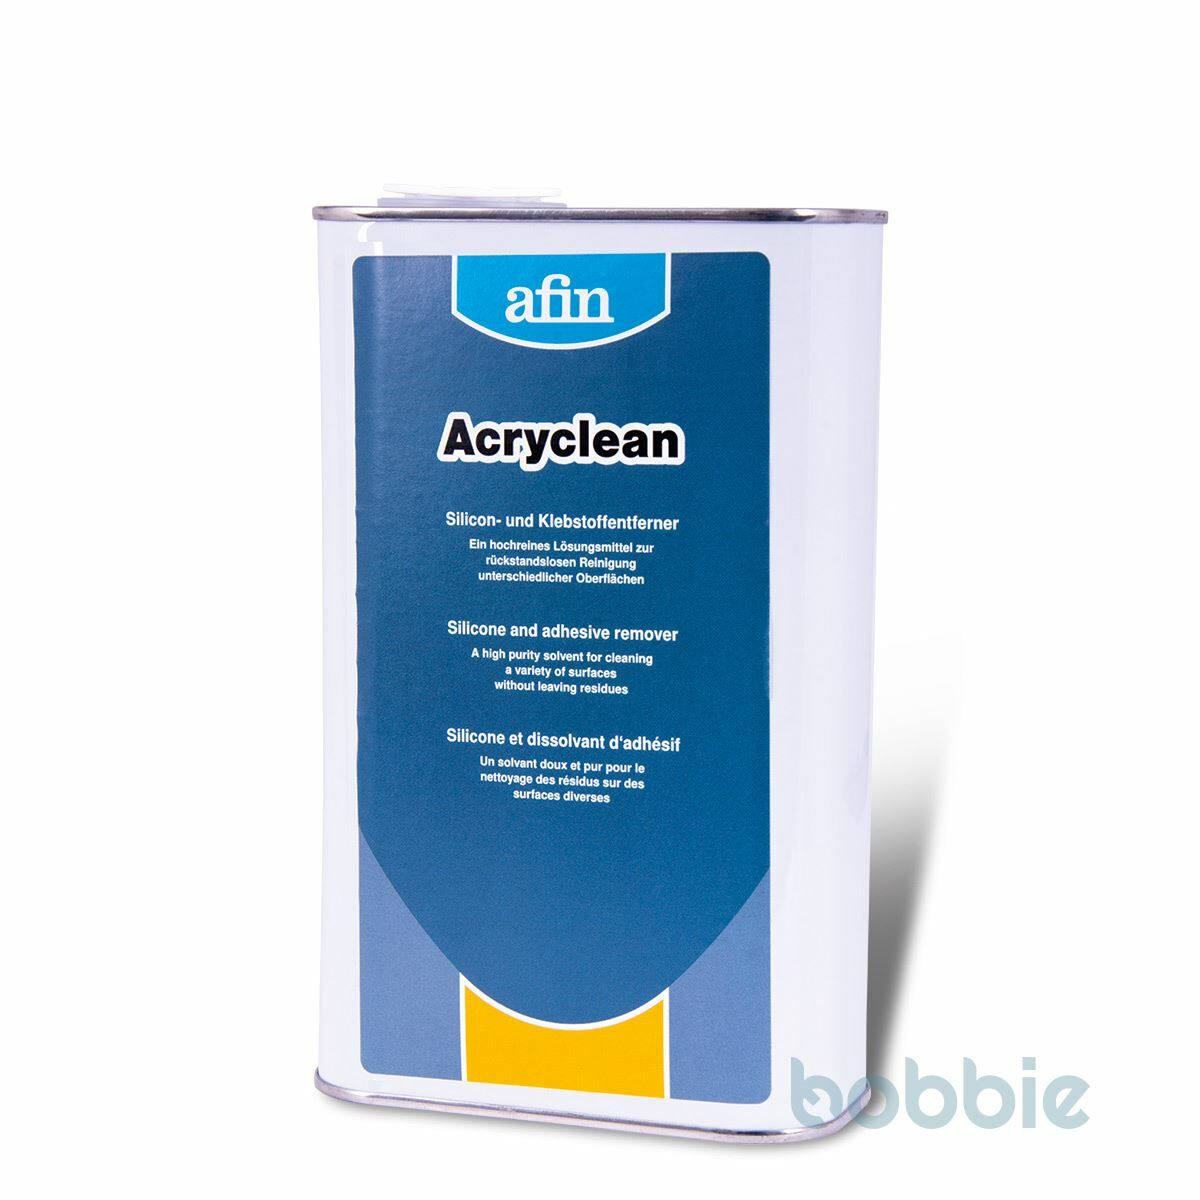 afin Acryclean - Siliconentferner